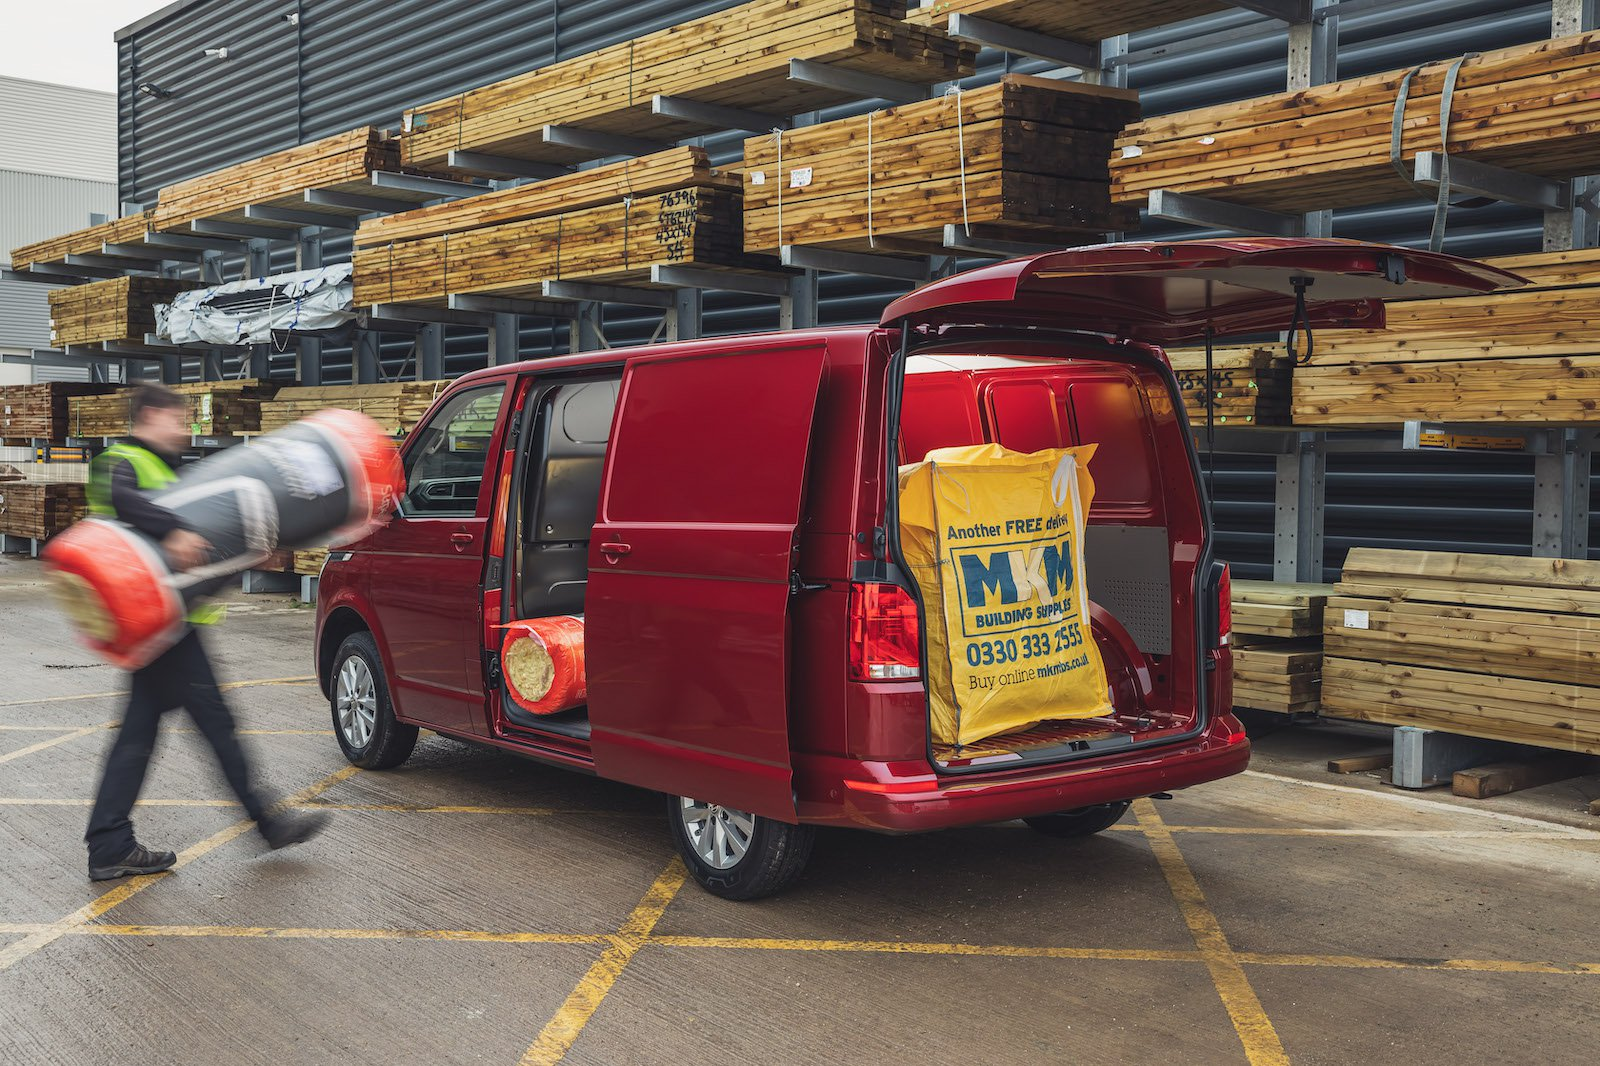 It might be worth thinking about how a few modifications or accessories could make loading your van easier